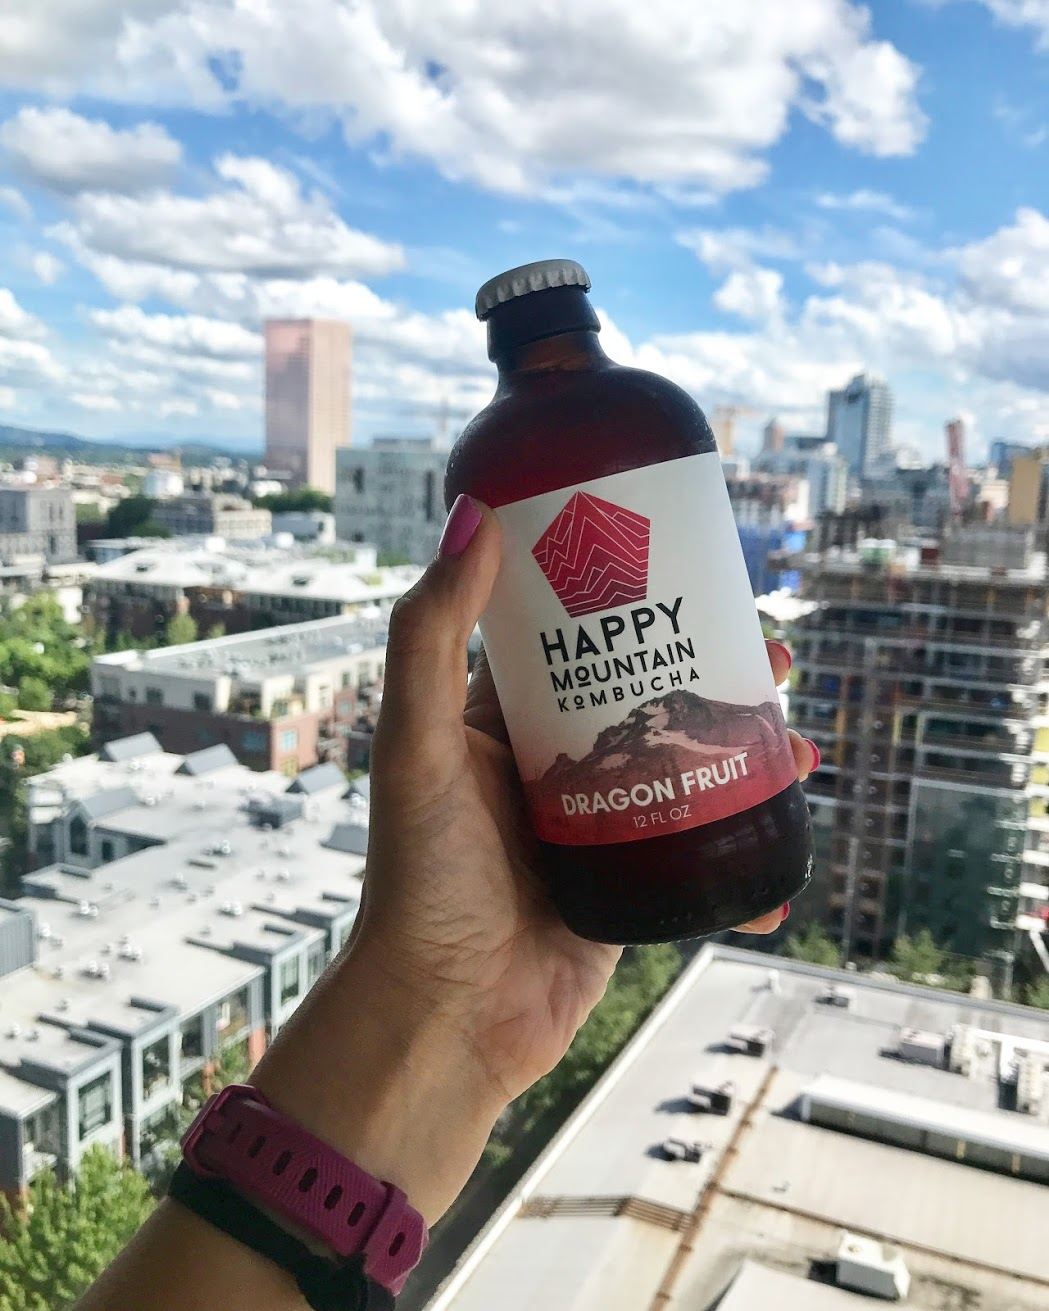 Happy Mountain Kombucha is a favorite of mine. If you're in the PNW, try them out!